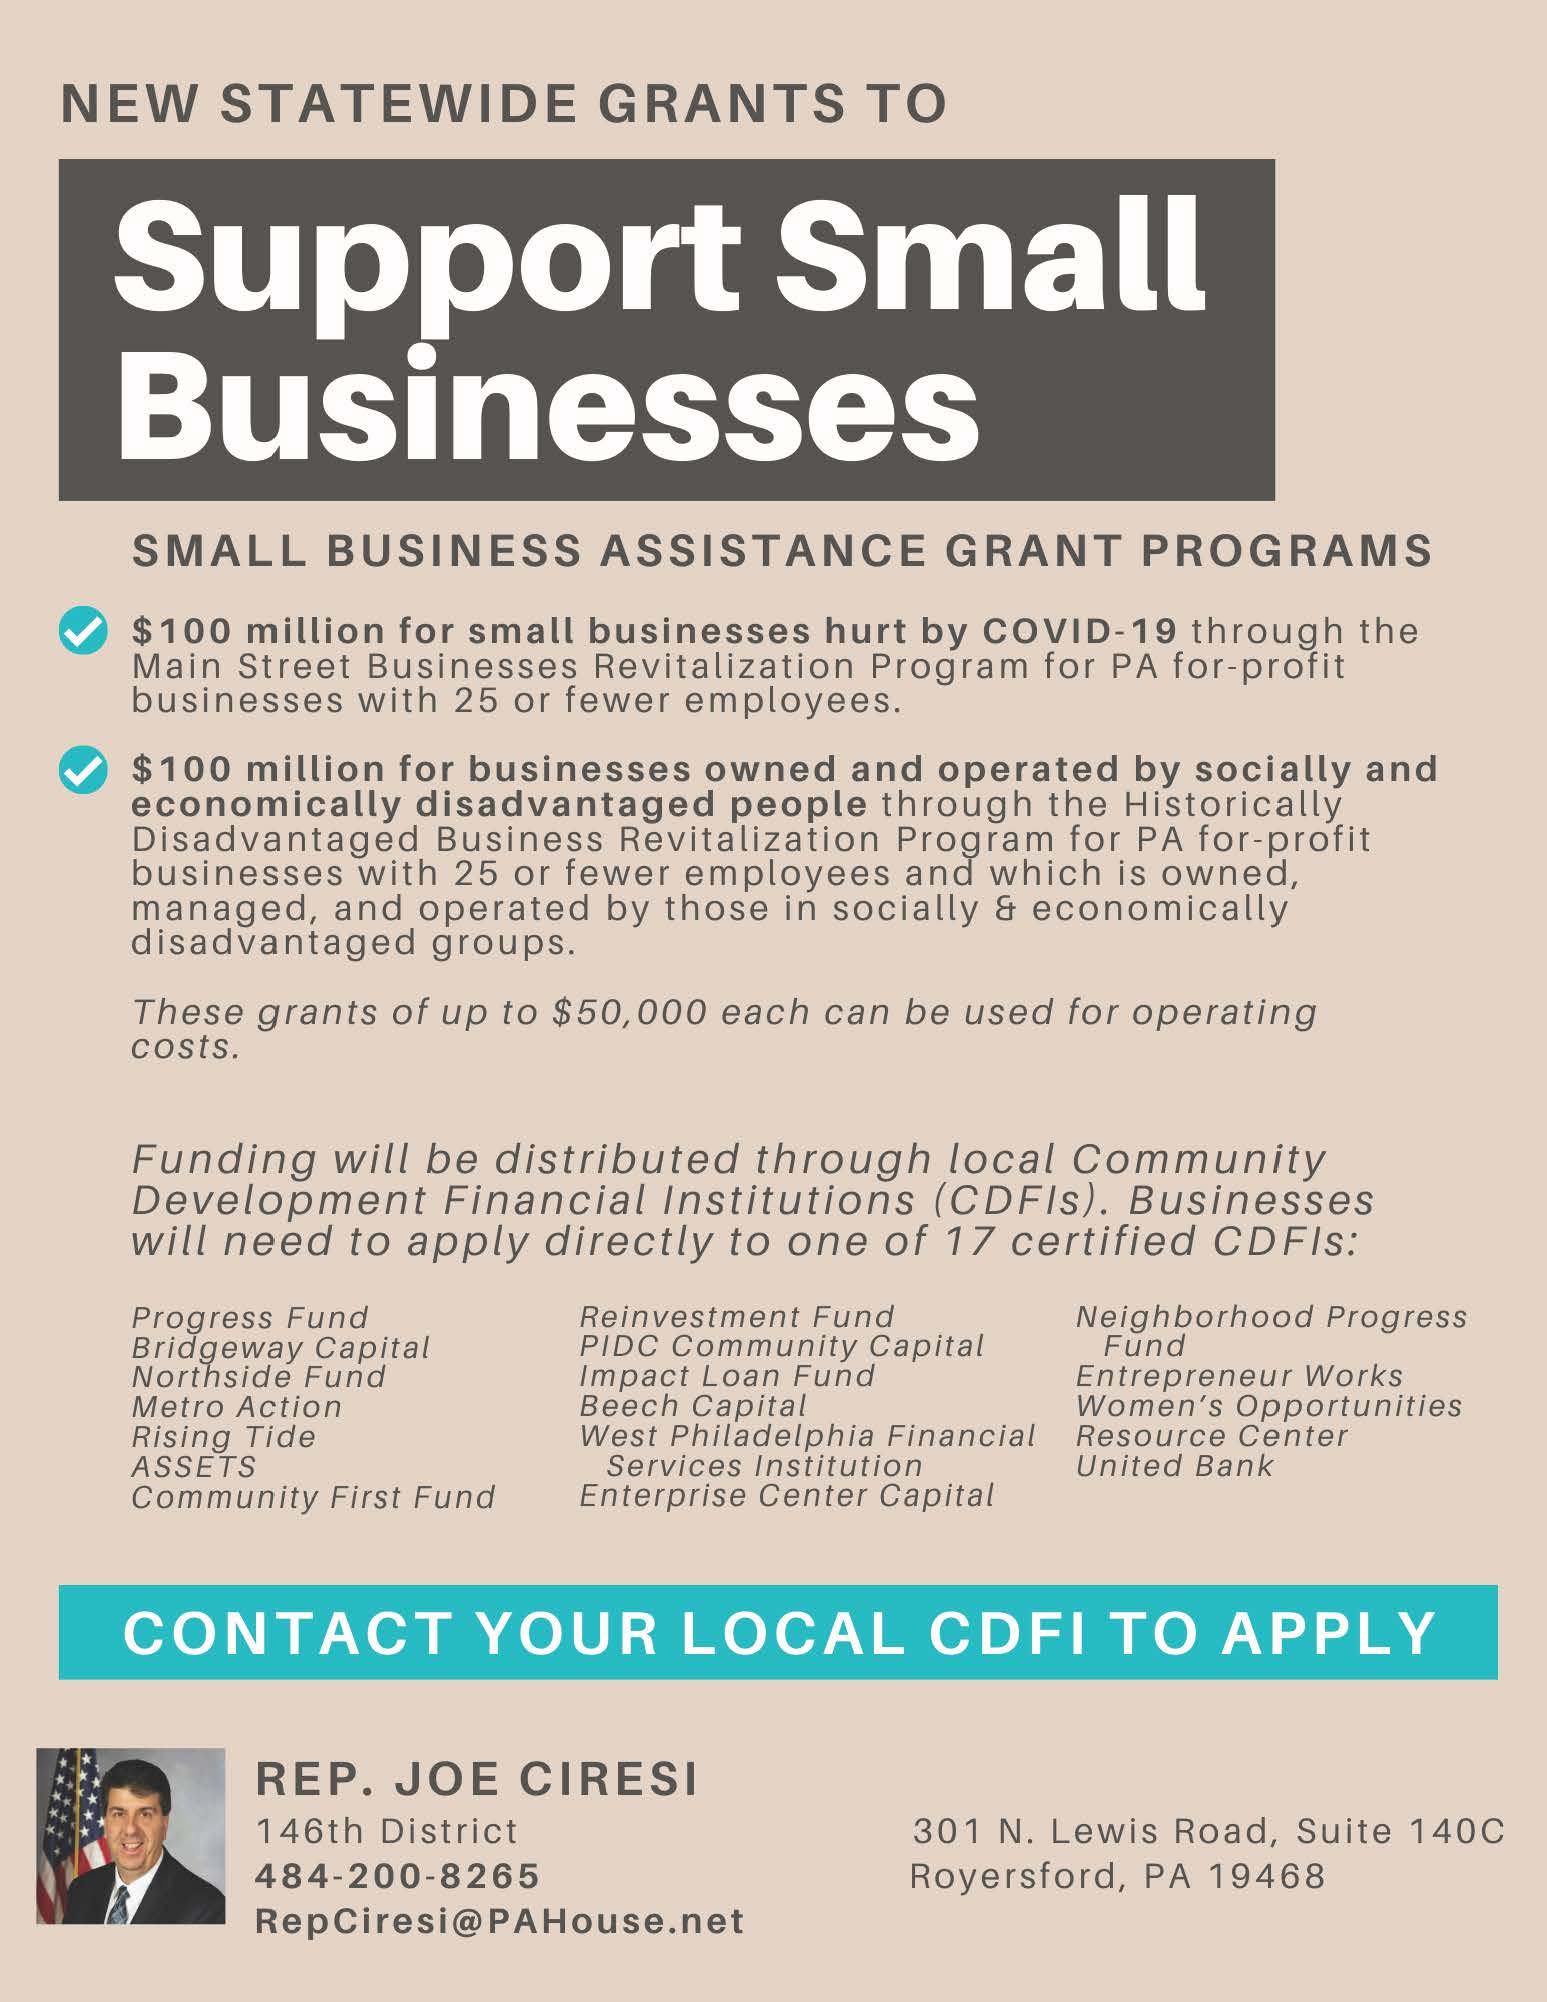 JOE CIRESI - Grants to support small businesses